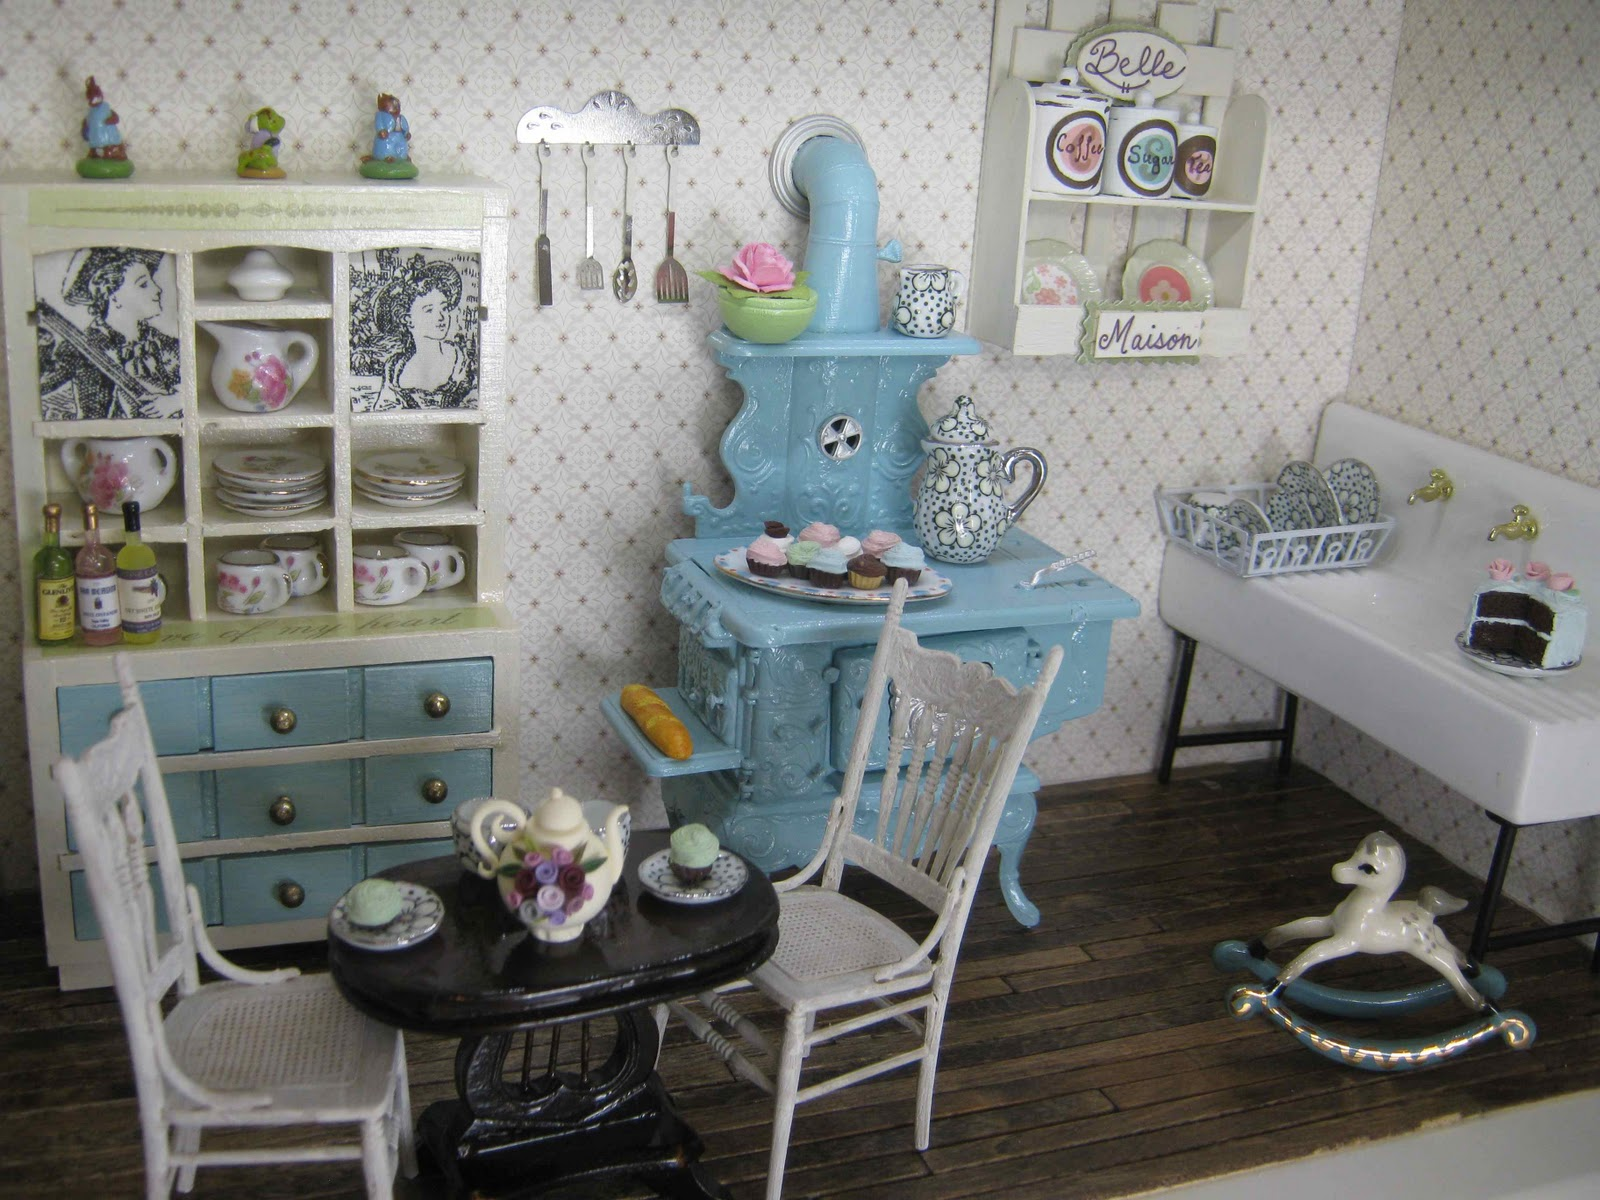 knotty by nature miniature shabby chic kitchen. Black Bedroom Furniture Sets. Home Design Ideas